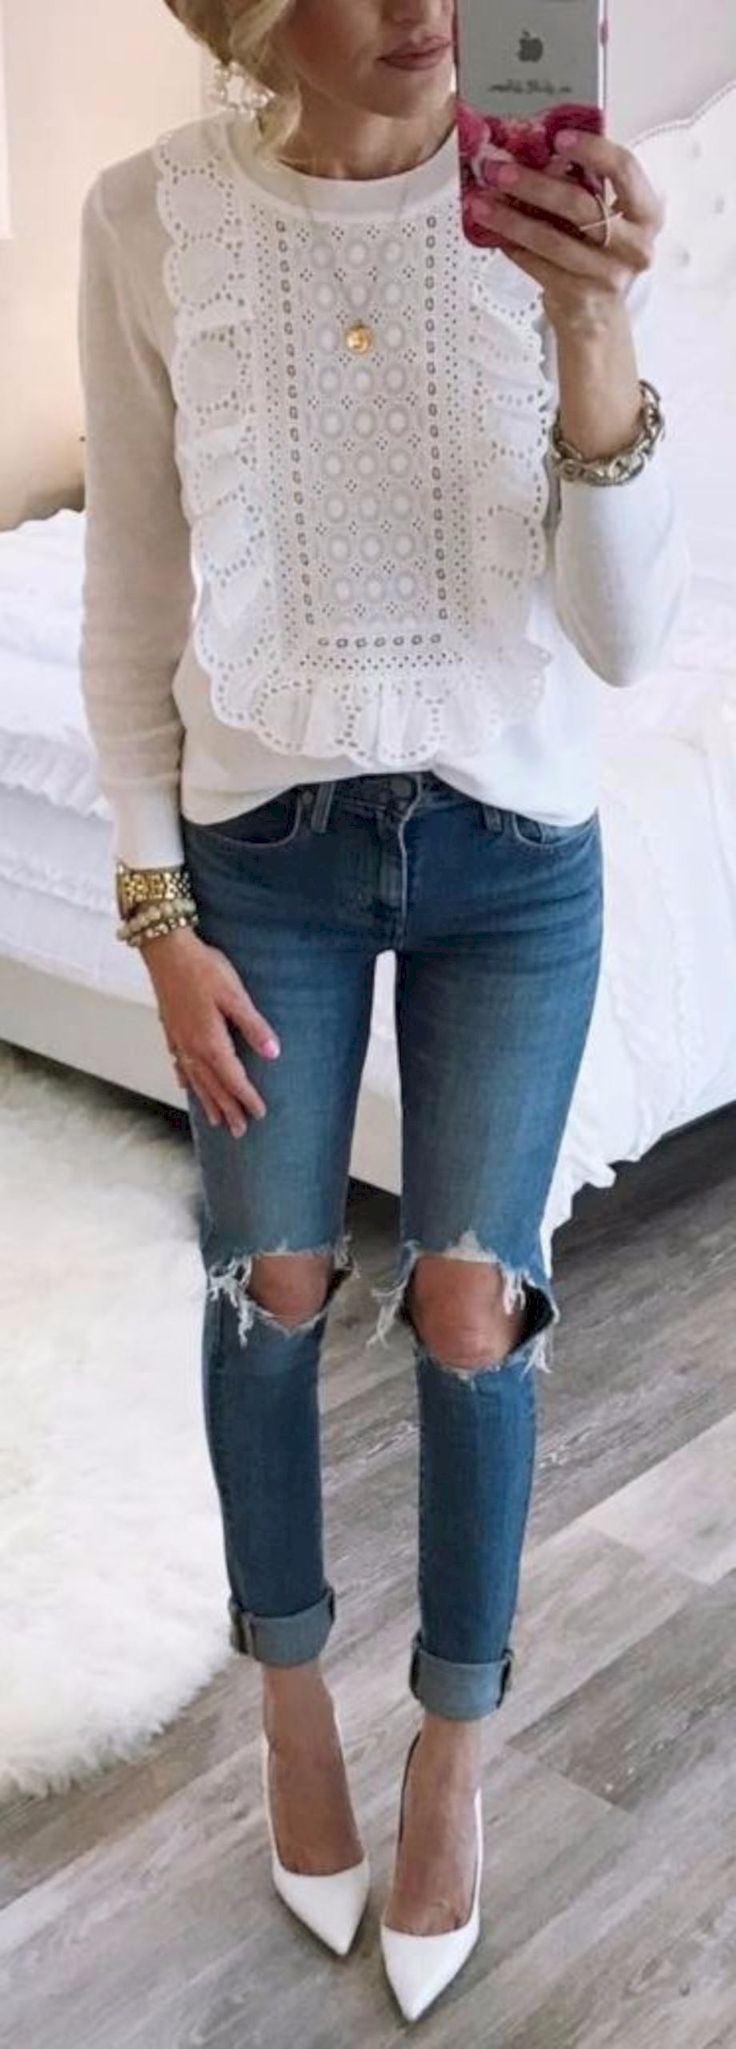 Trending spring outfits ideas to fill out your style (36) - Fashionetter